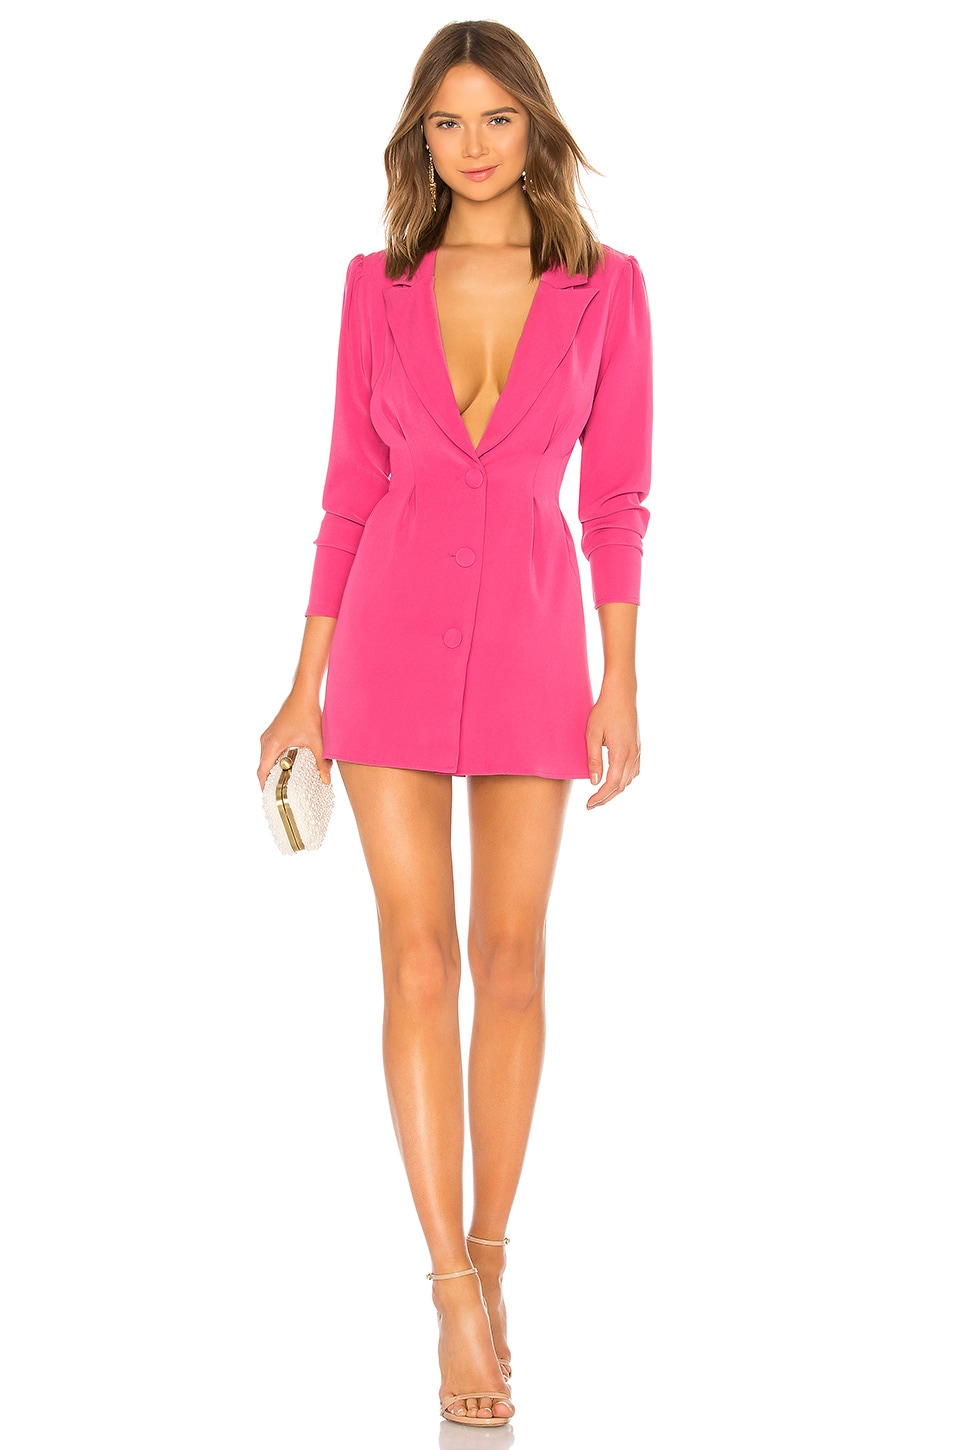 Lovers Friends City Blazer Dress In Magenta Pink Revolve I hope you enjoy seeing what i got in my latest. lovers friends